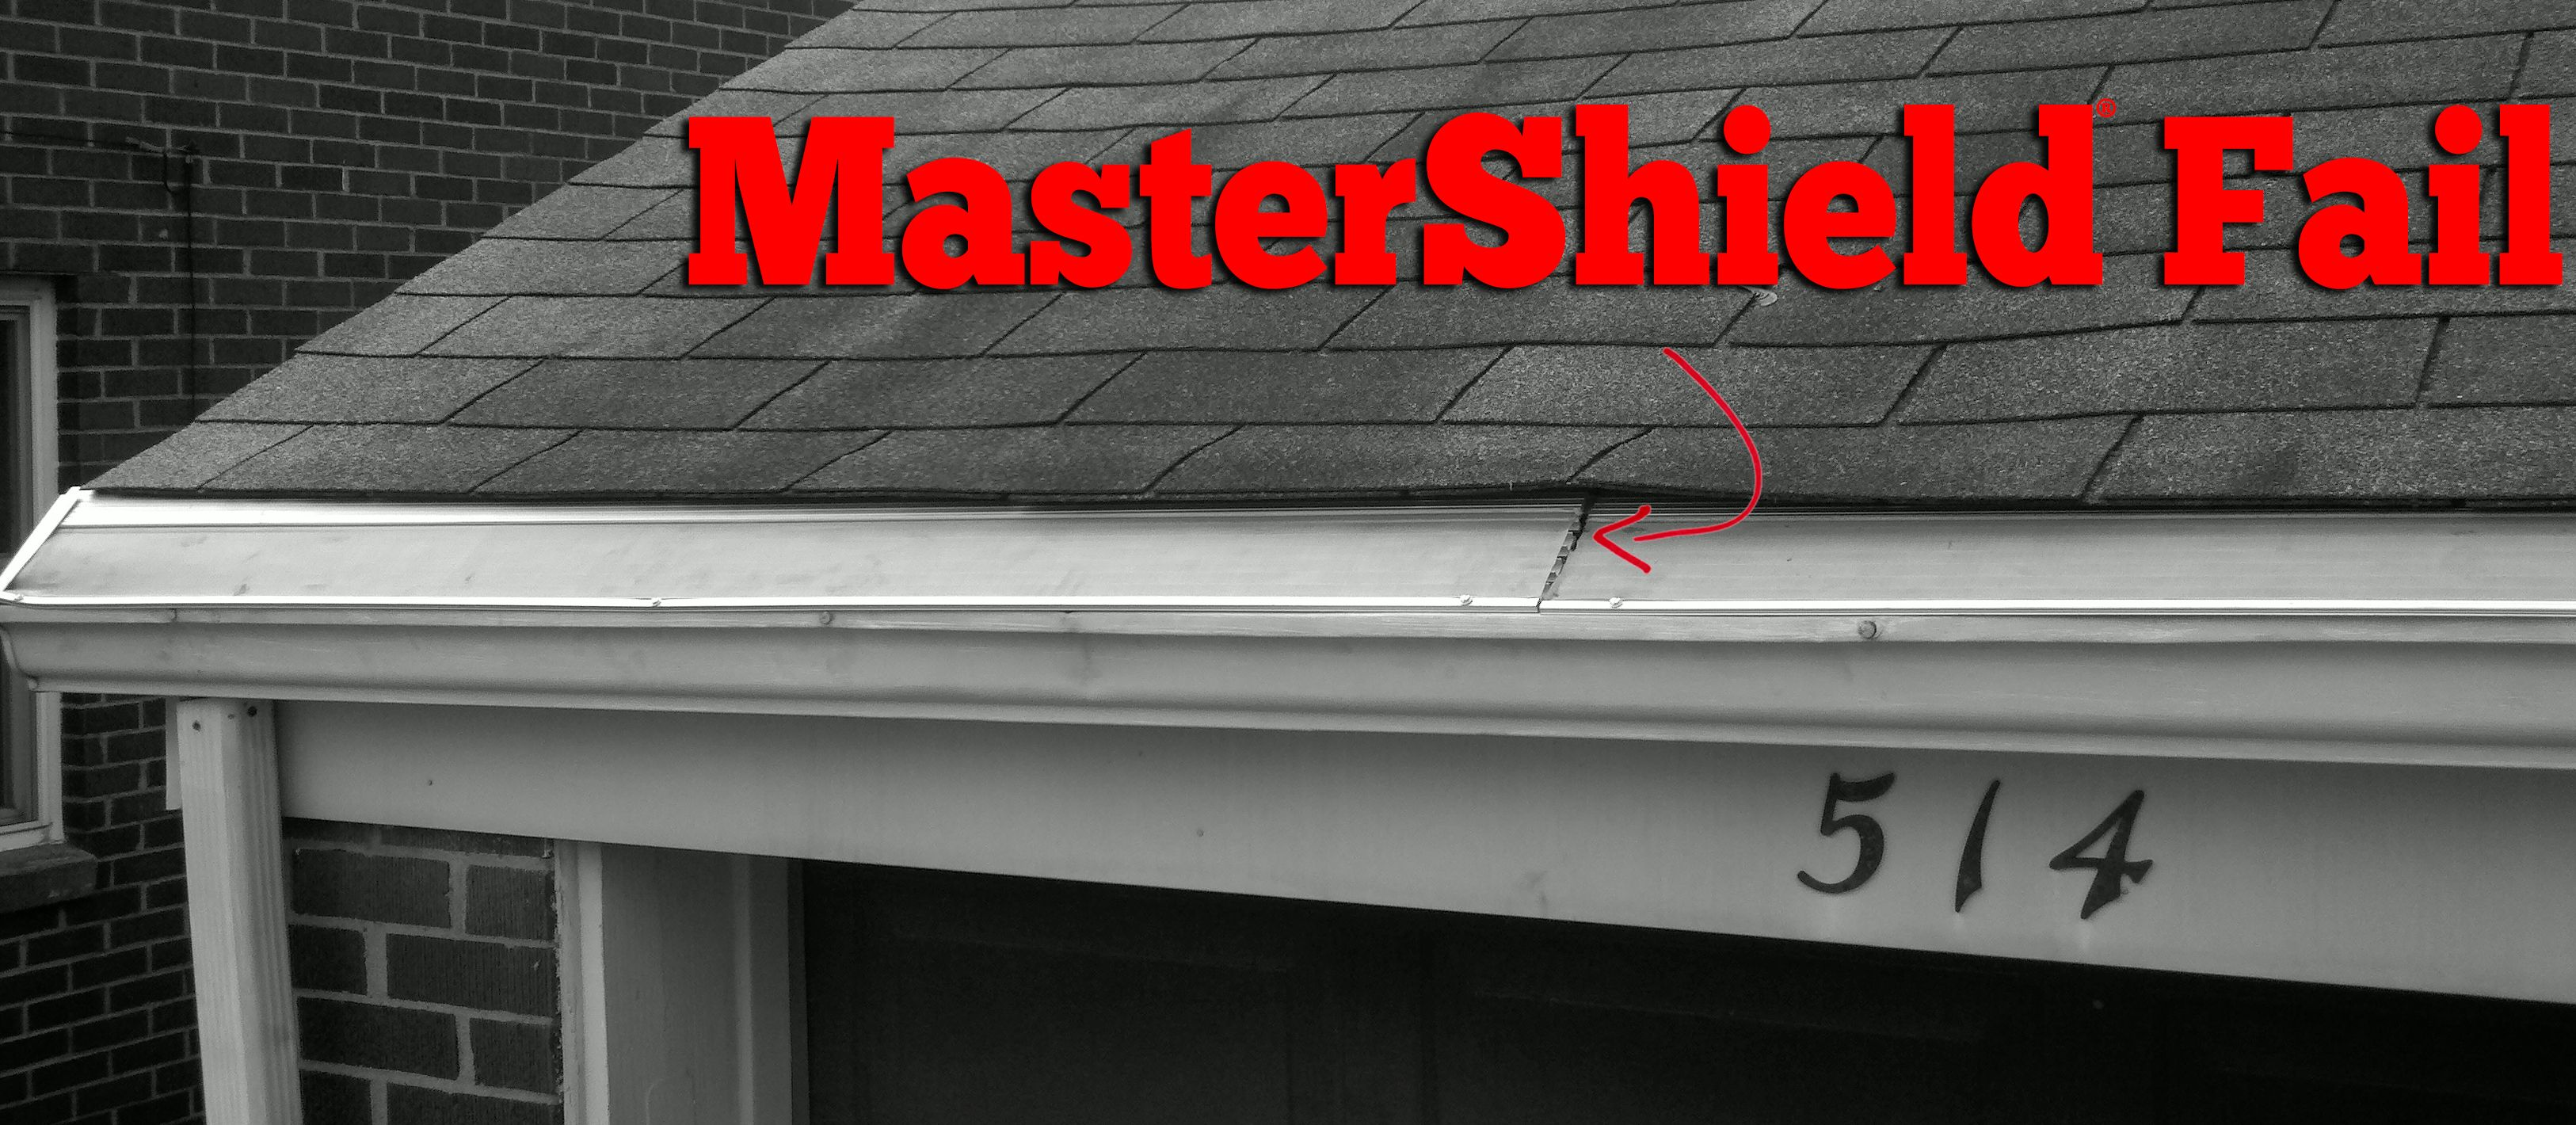 This Mastershield System Is Placed Under The First Layer Of Shingles On Your Roof As You Can See Not Only Are The Shing Gutter Protection Gutter Guard Gutter